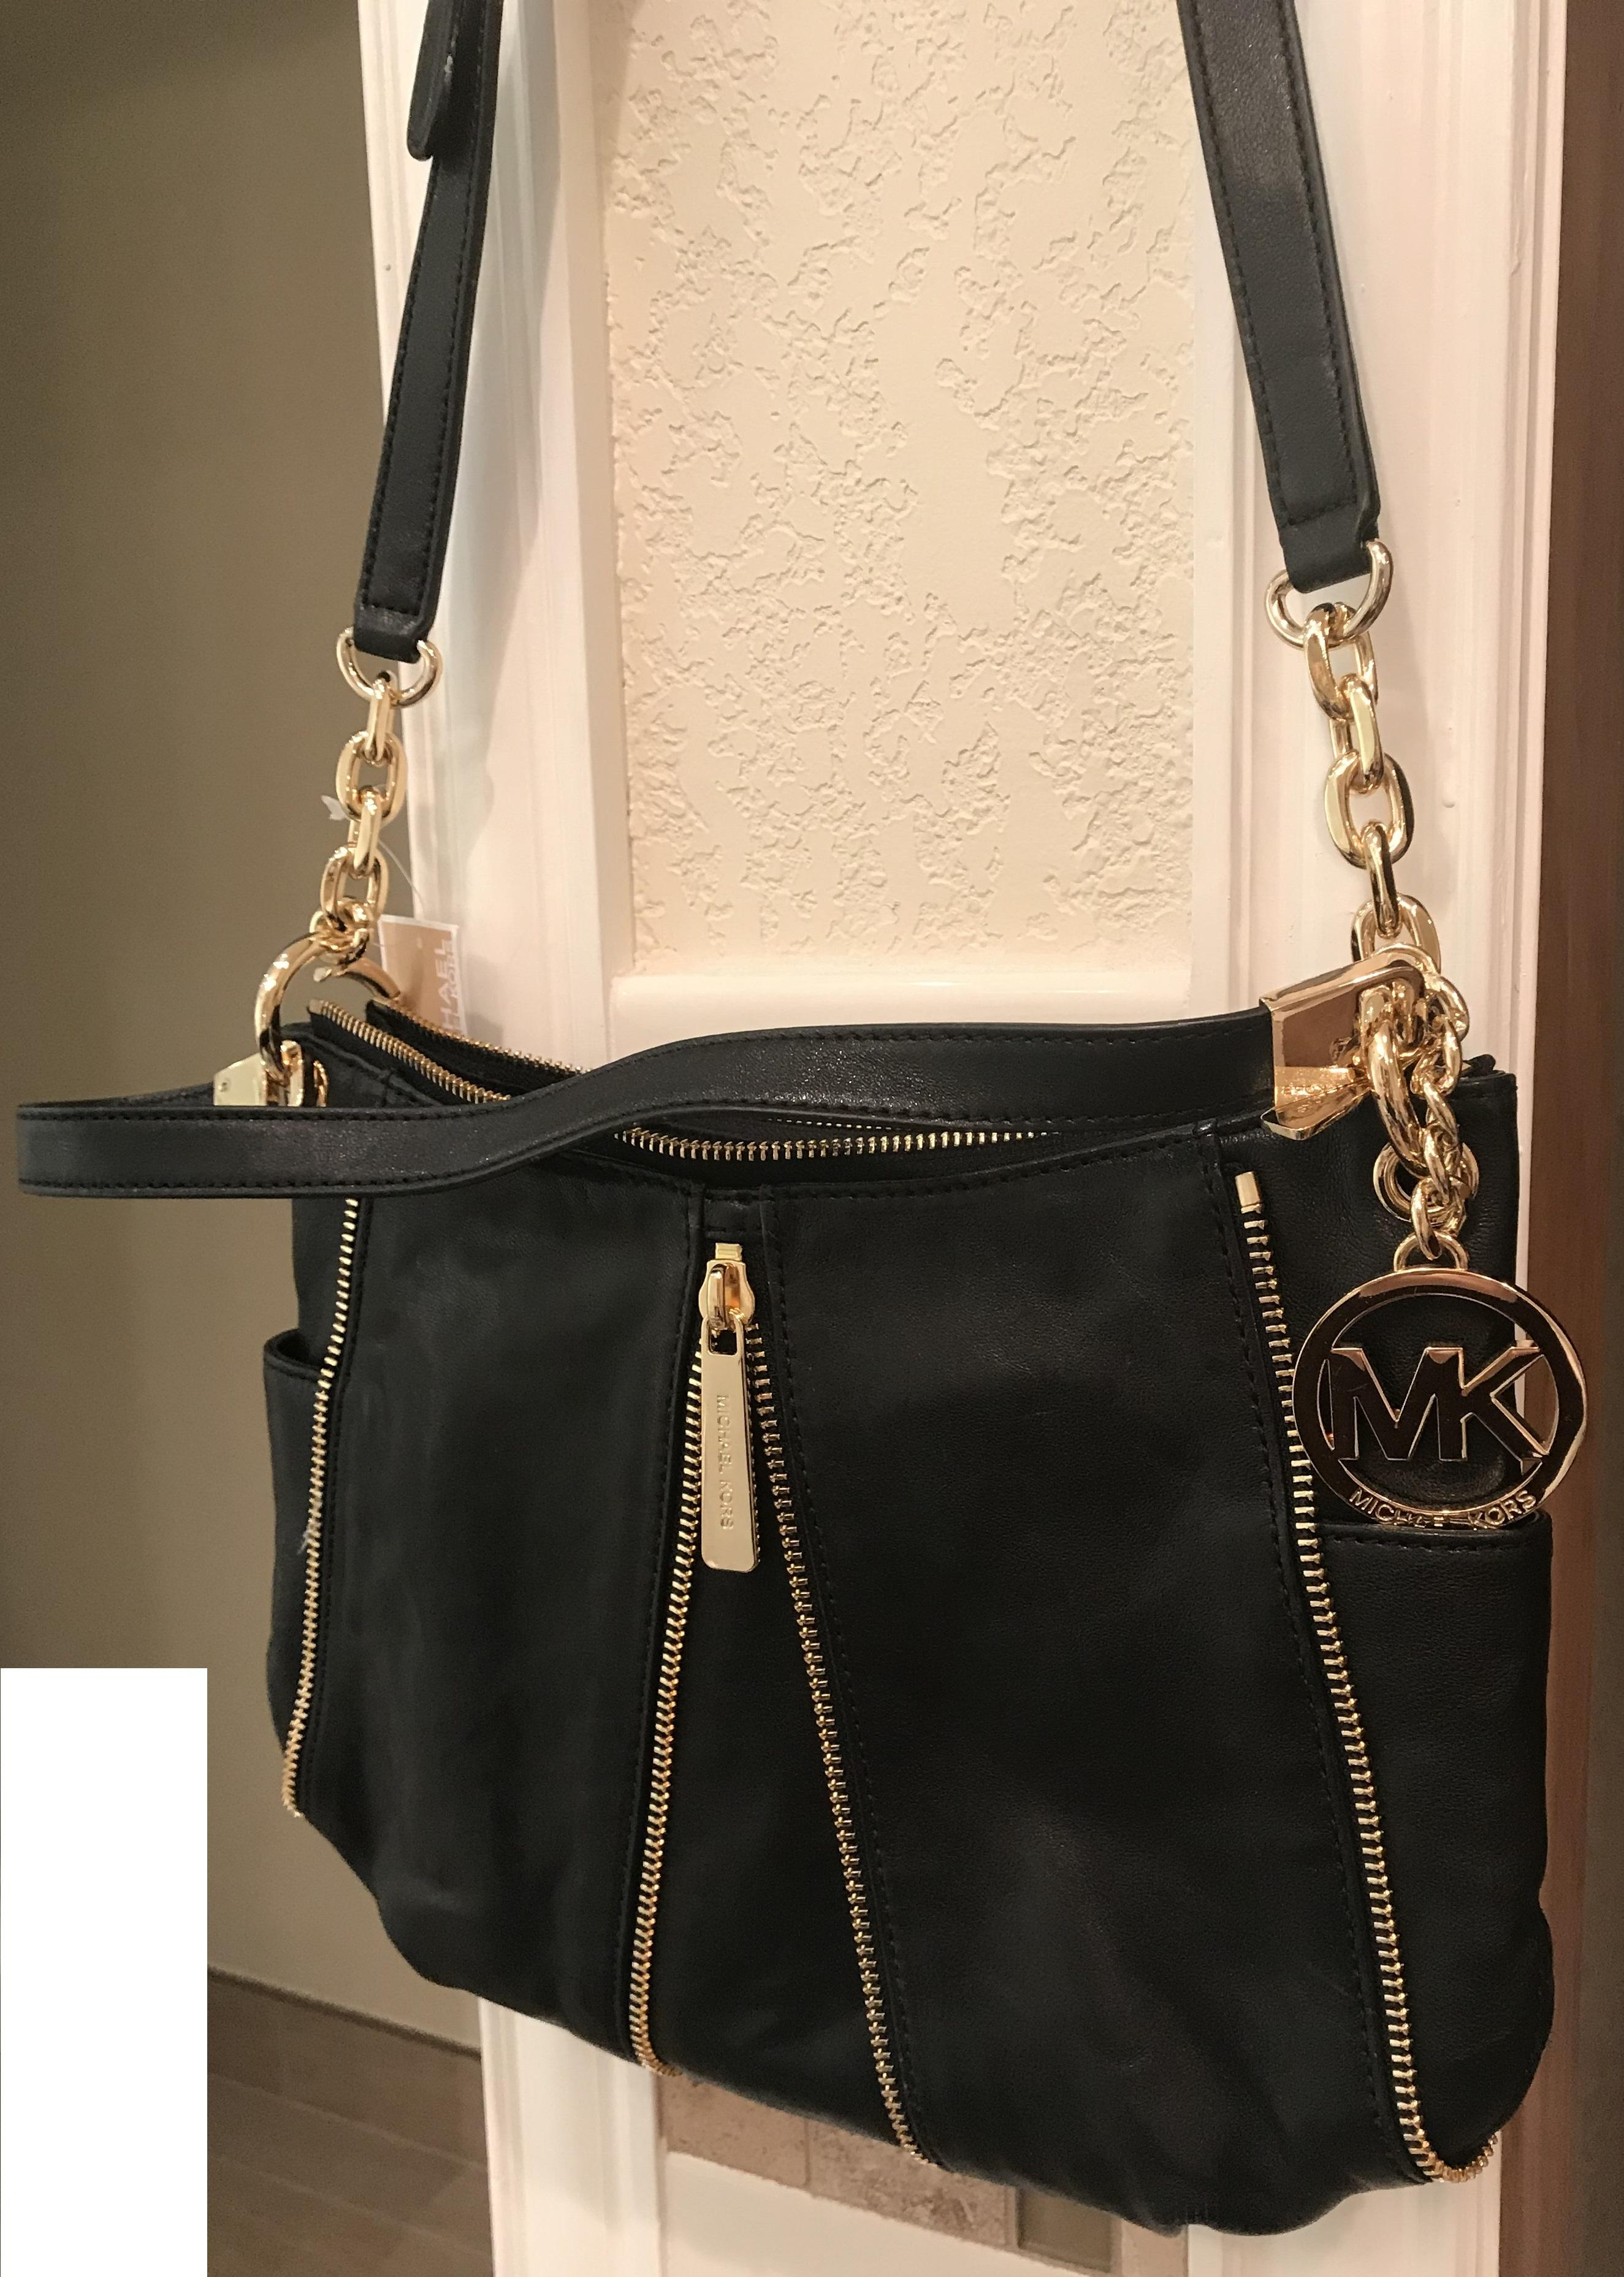 ... coupon code for michael kors newman medium hobo crossbody shoulder  black leather messenger bag tradesy bed95 ... 01fbc8240586f